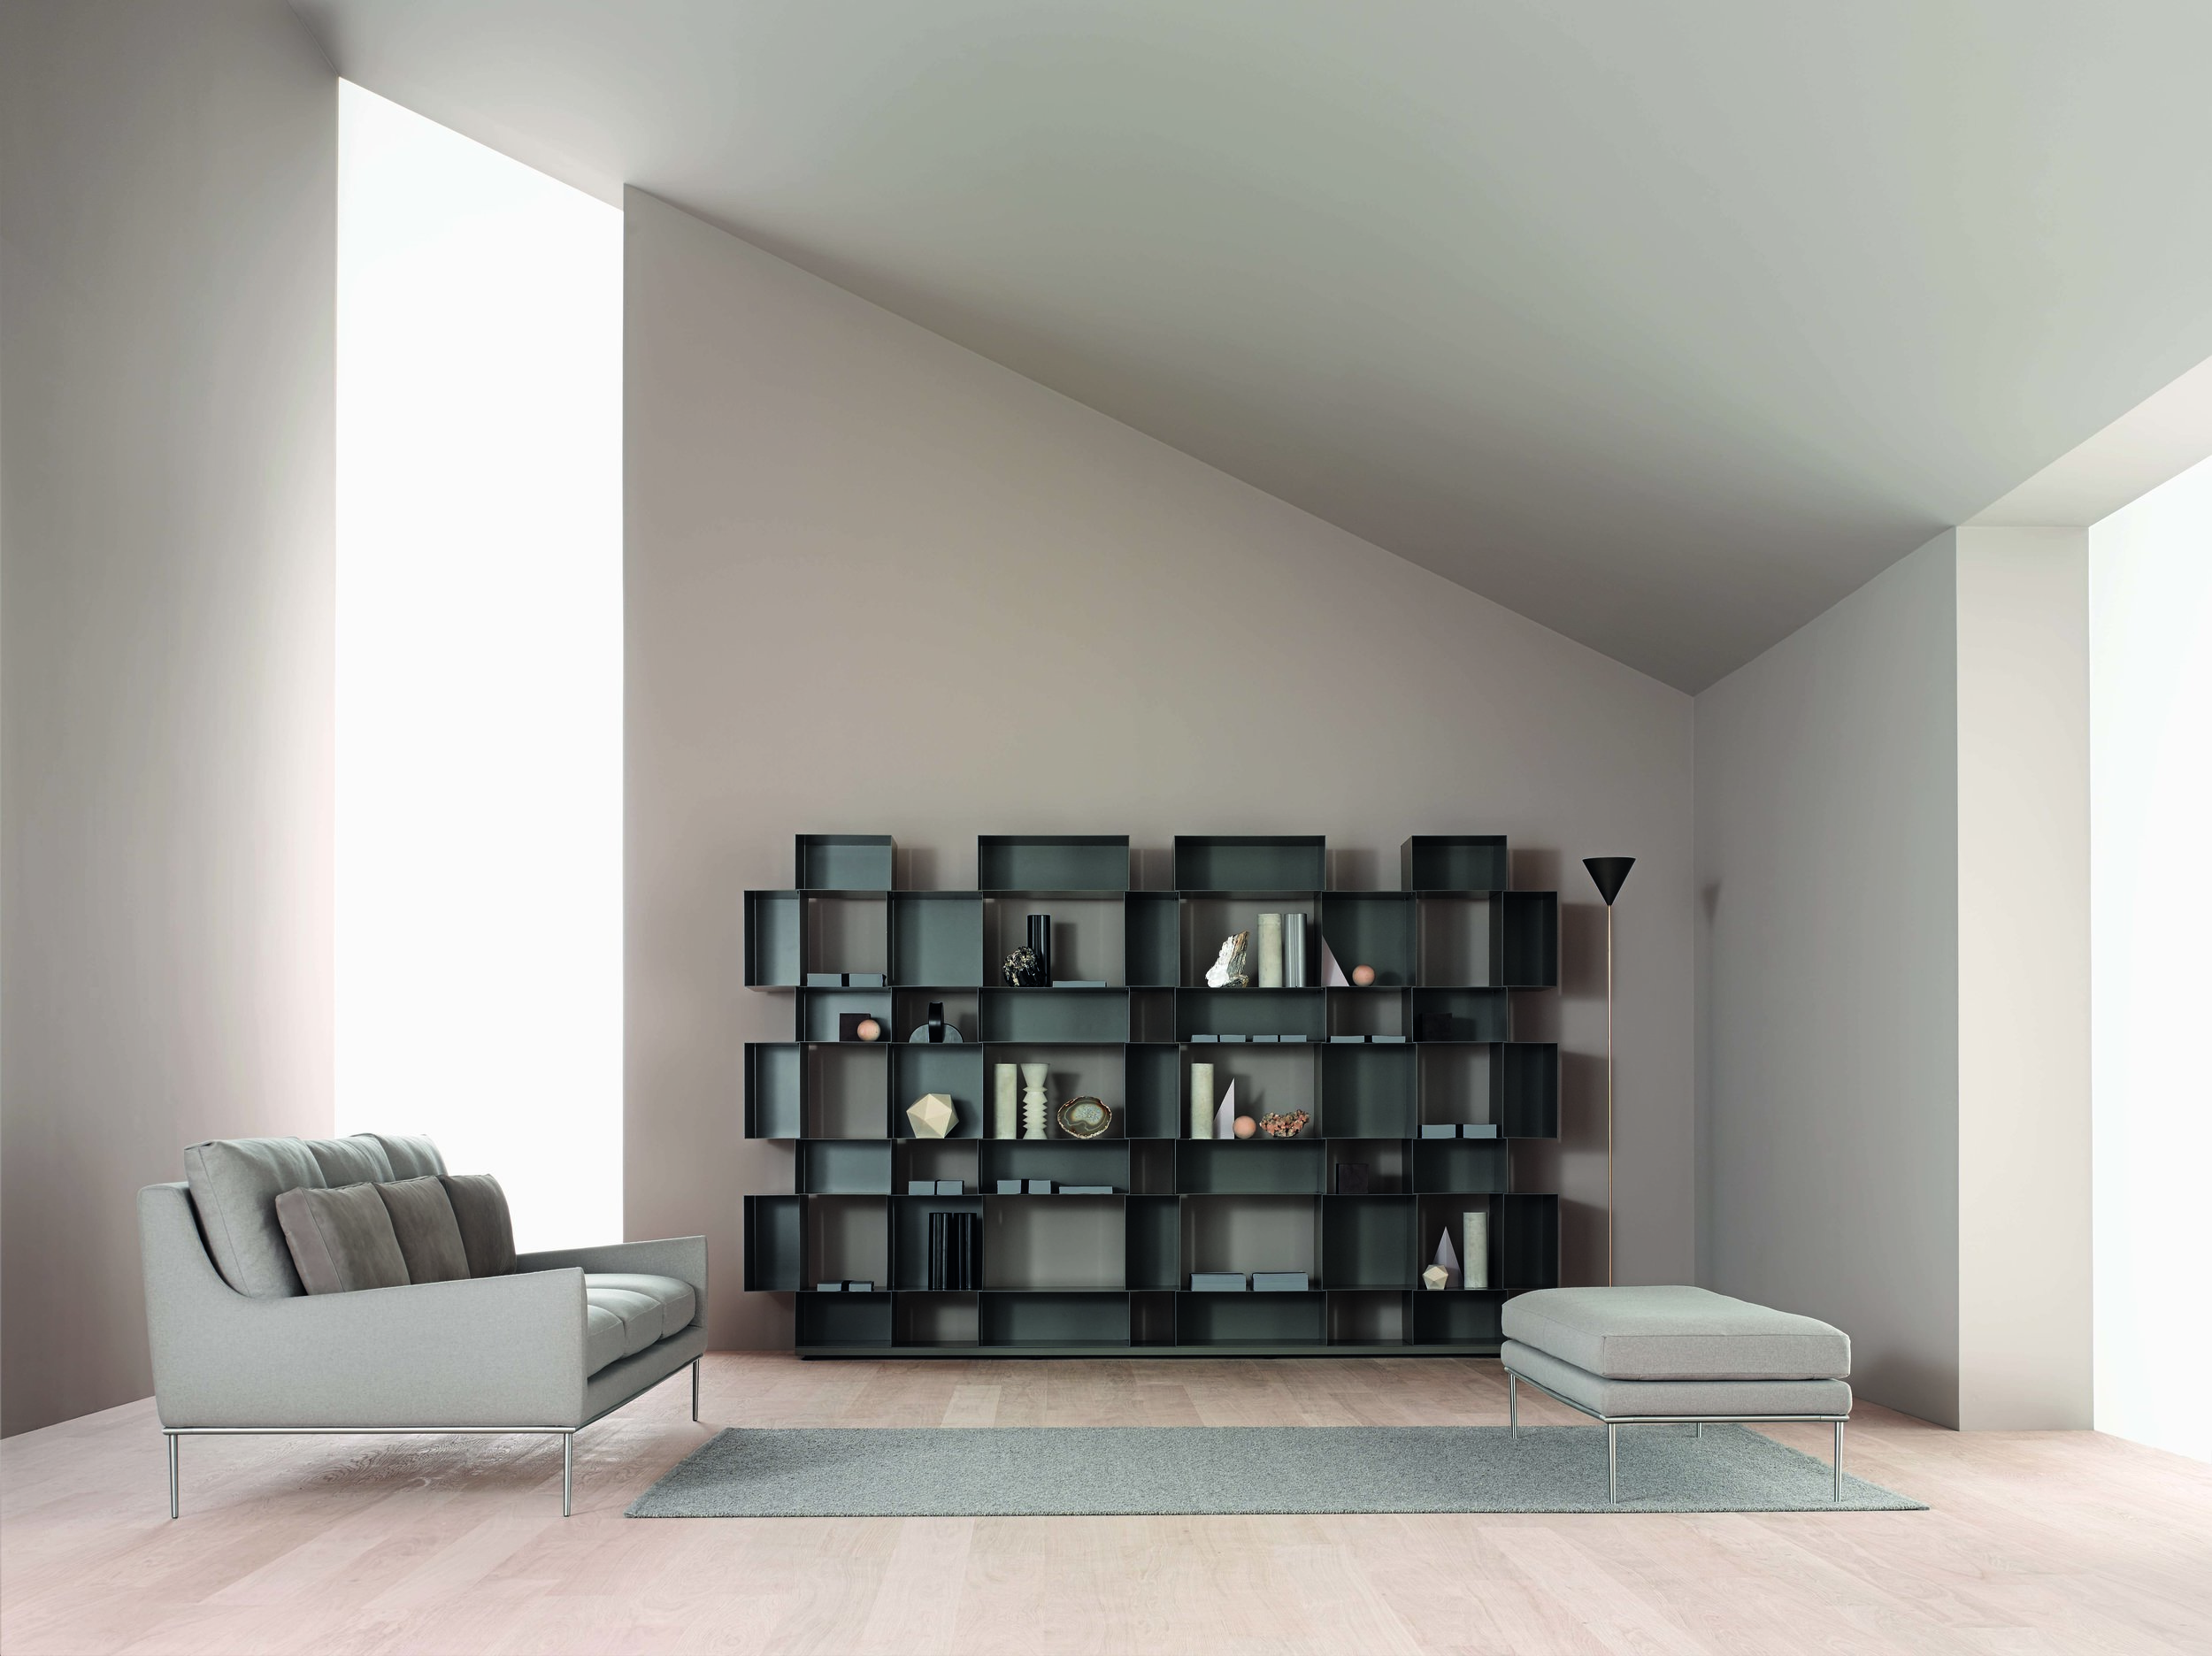 03_Eresia_Bookcase + Alice_Sofa.jpg